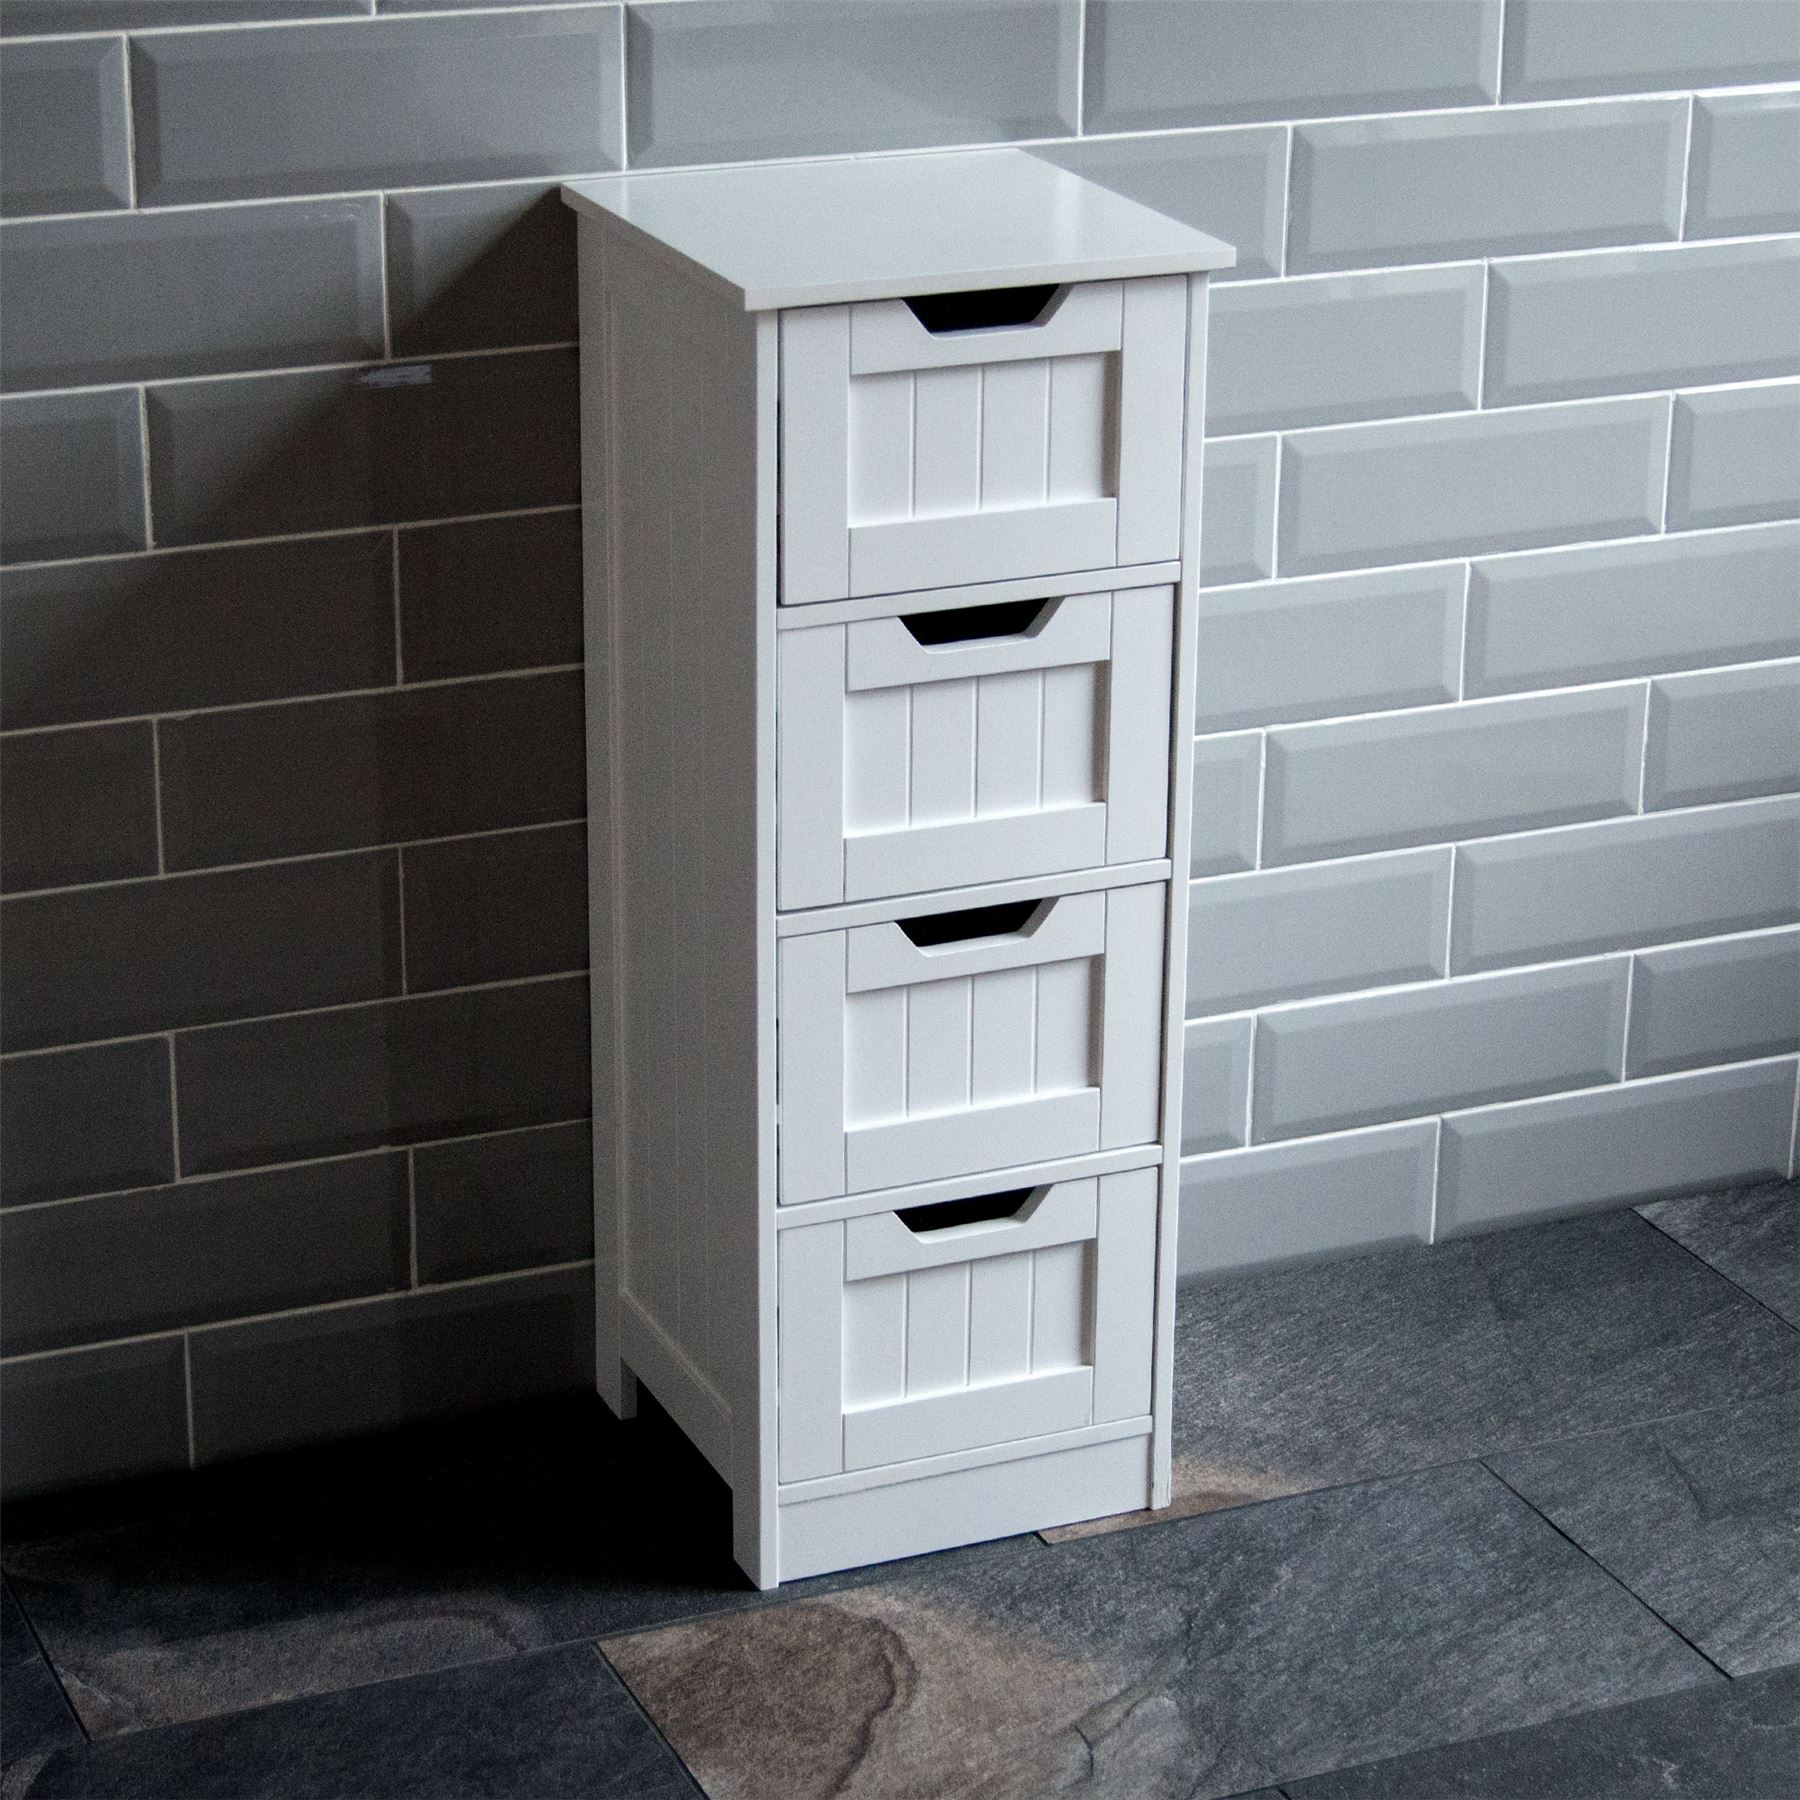 Bathroom 4 Drawer Cabinet Storage Cupboard Wooden White Unit By Home Discount Ebay